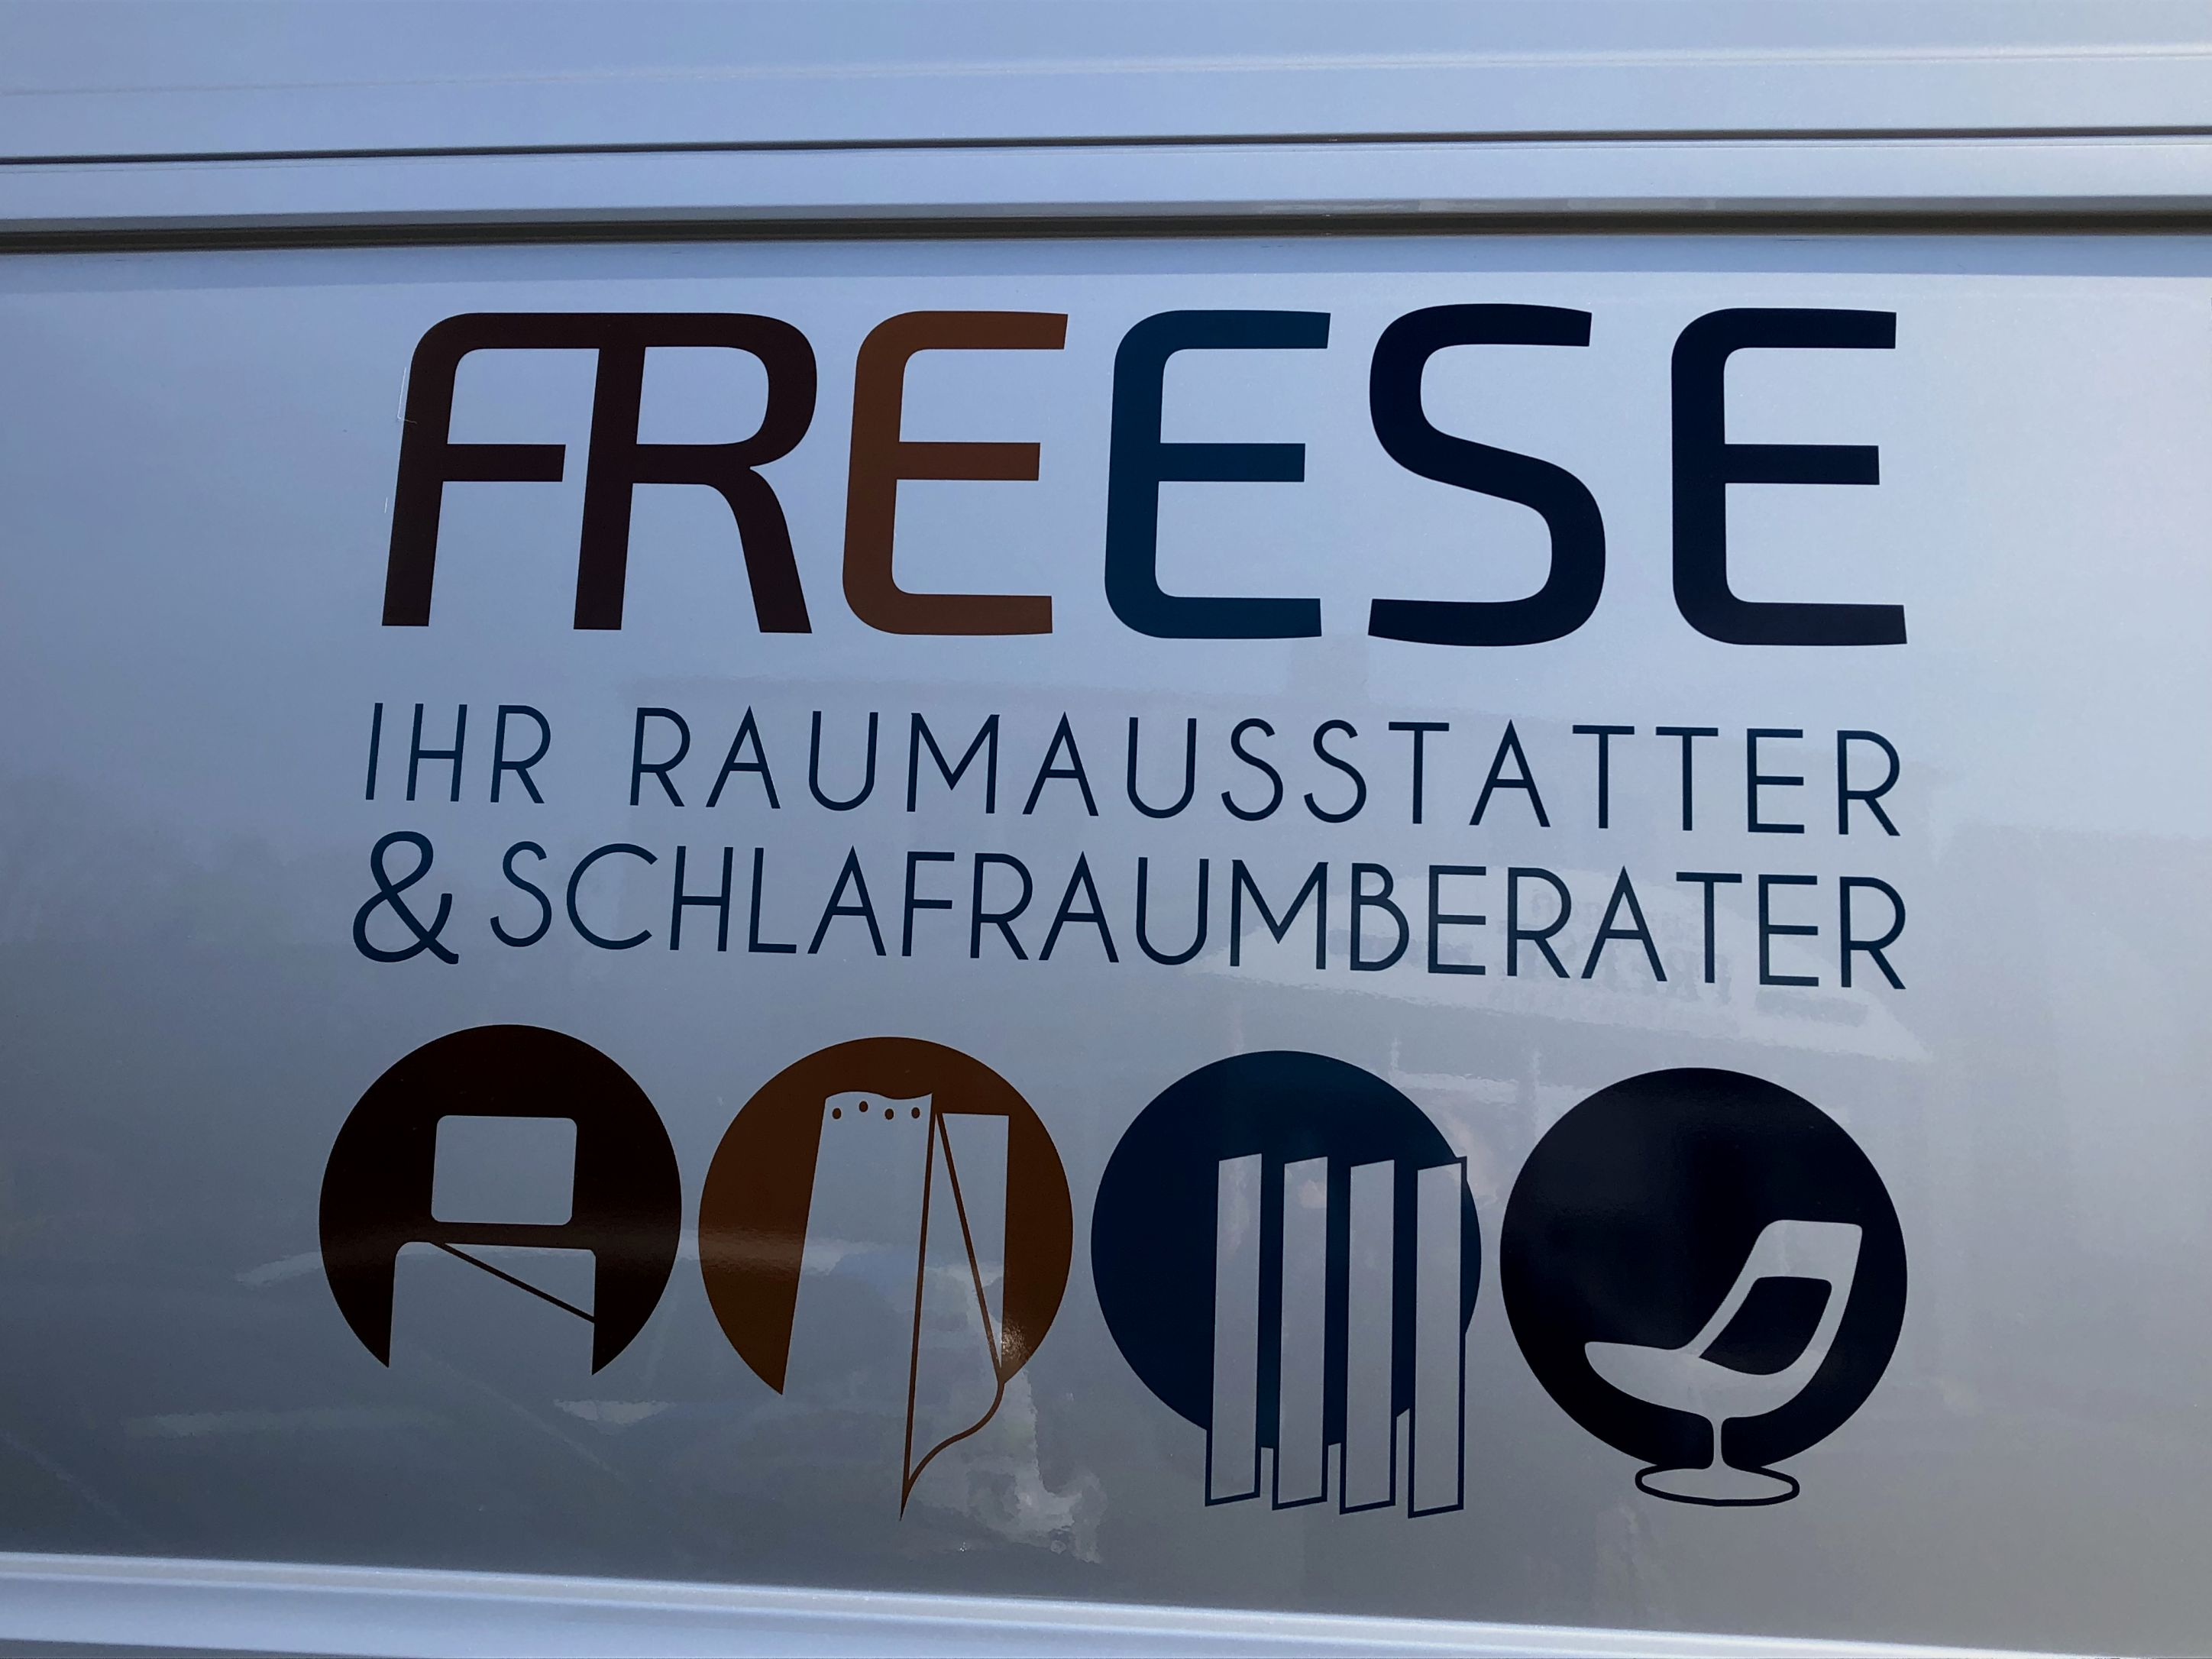 Freese Raumausstatter